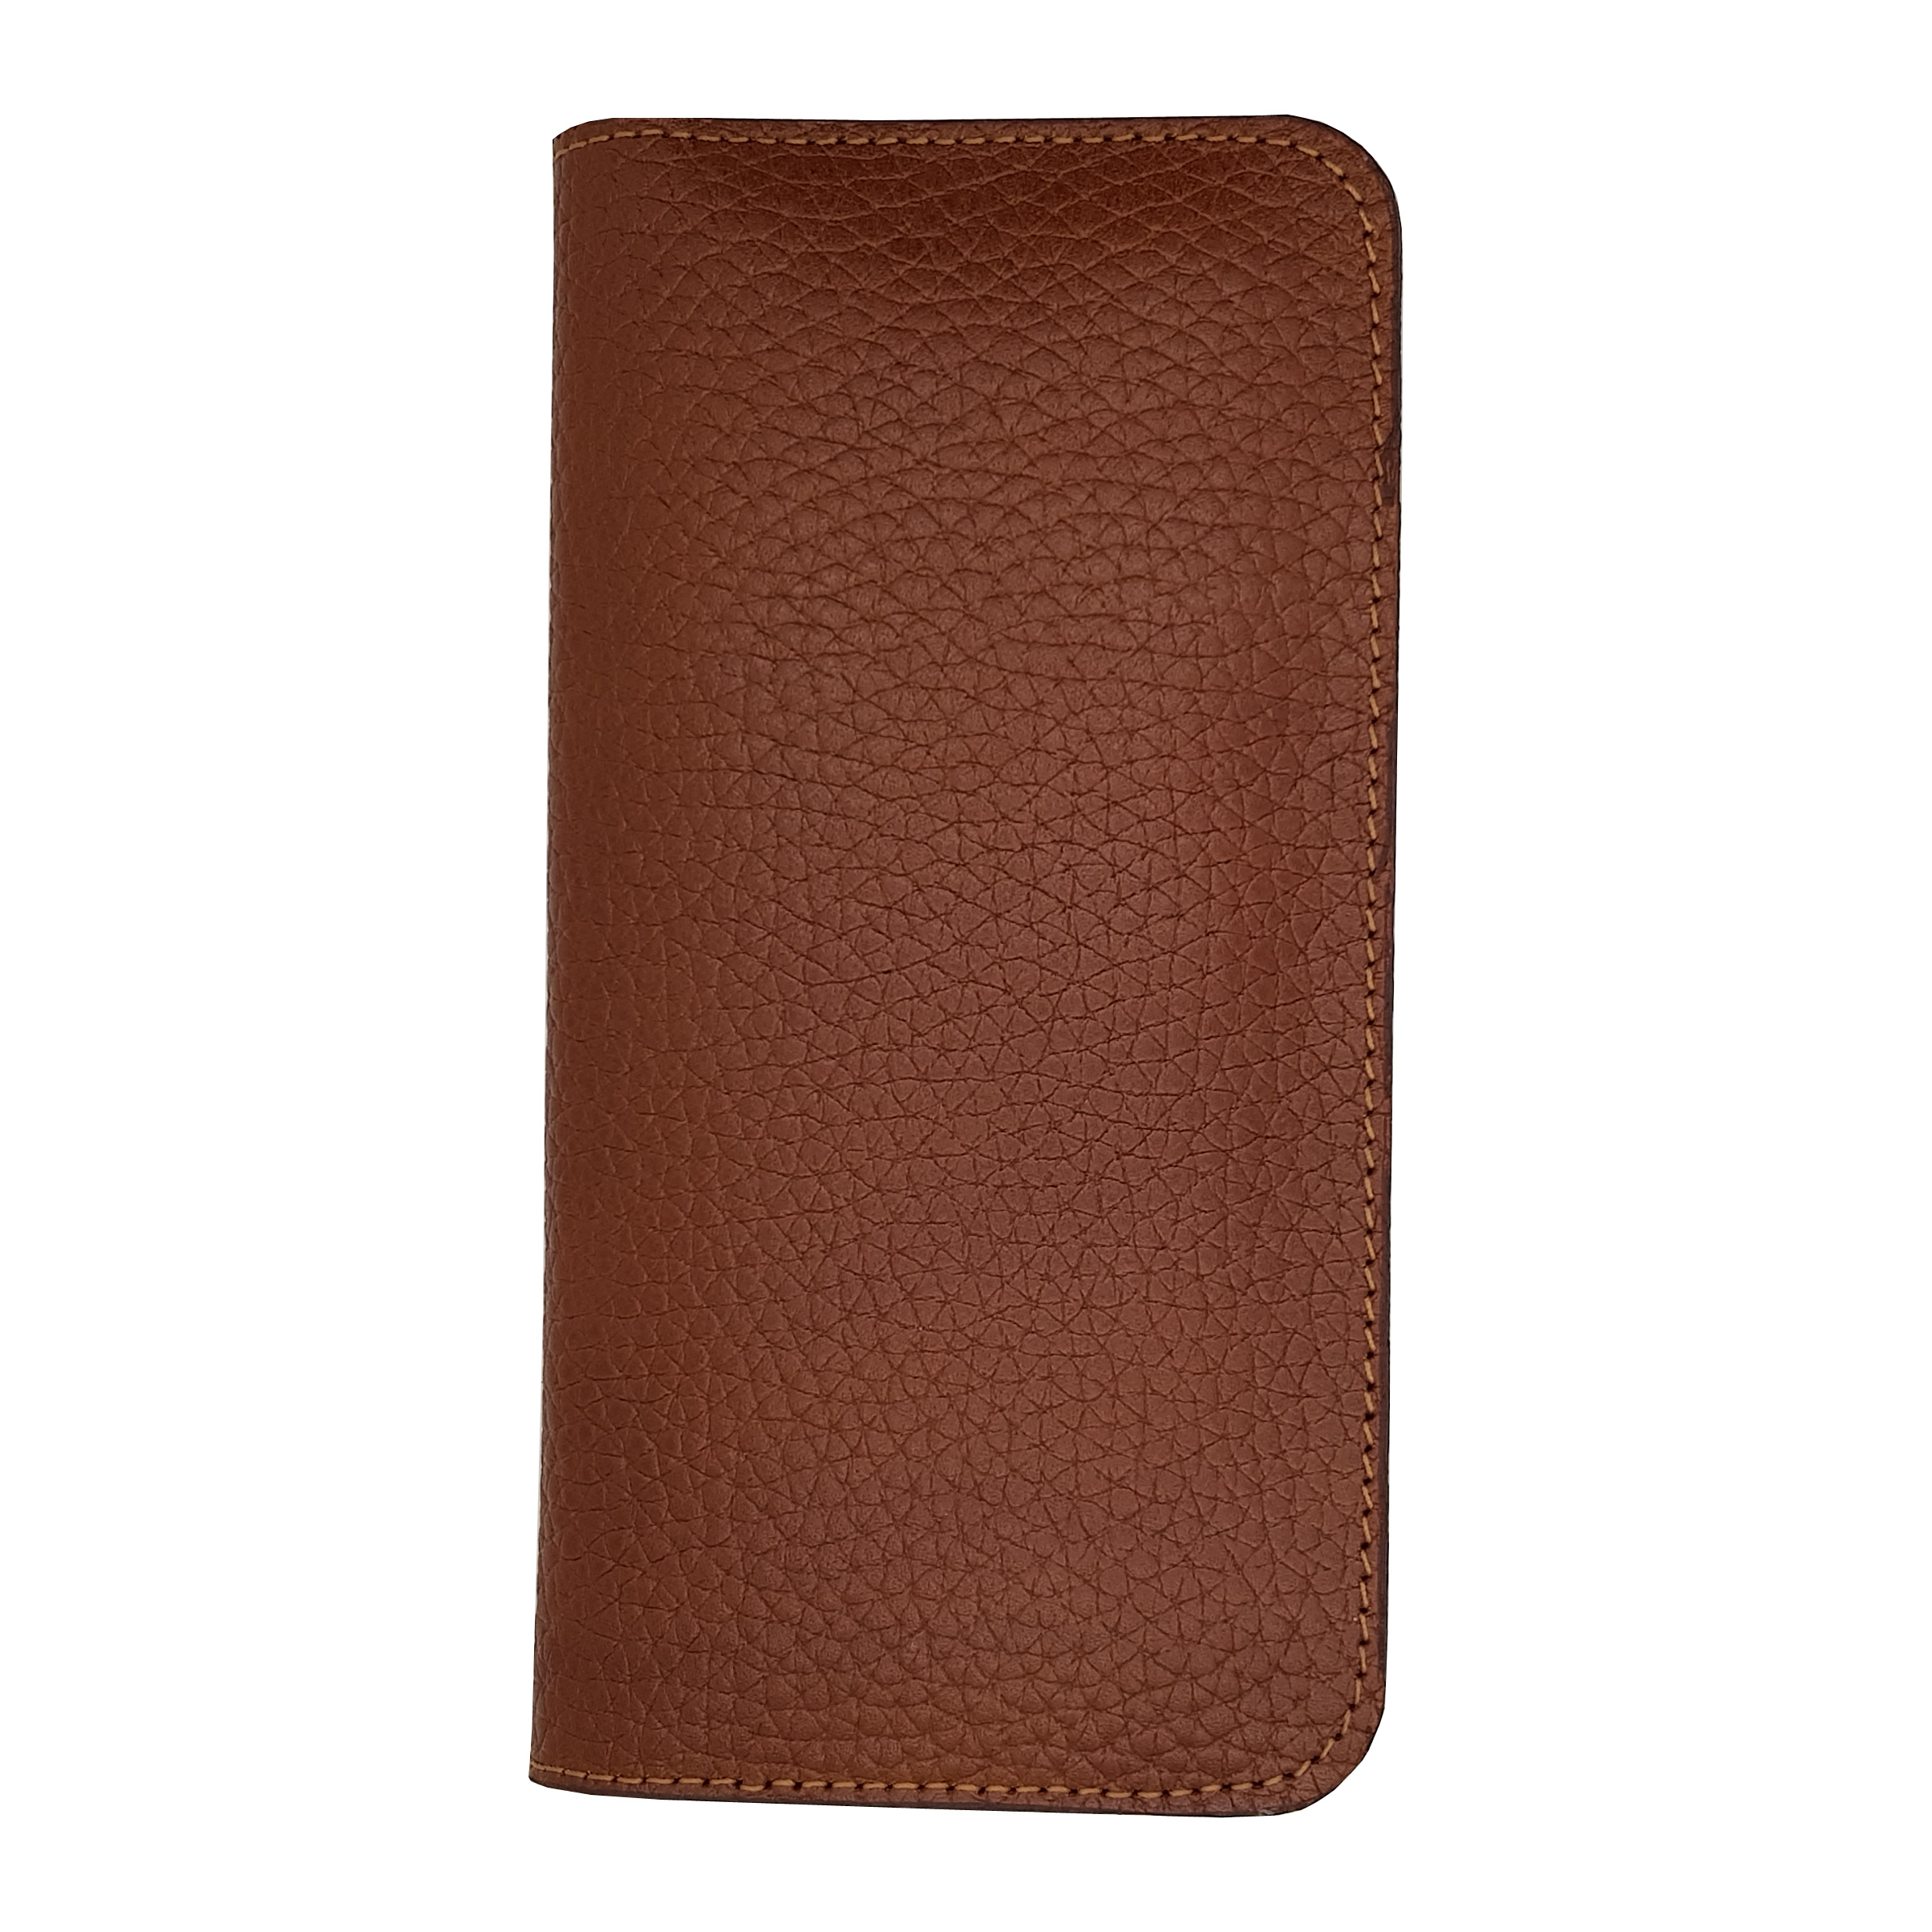 DIYAKO natural leather wallet, code 255